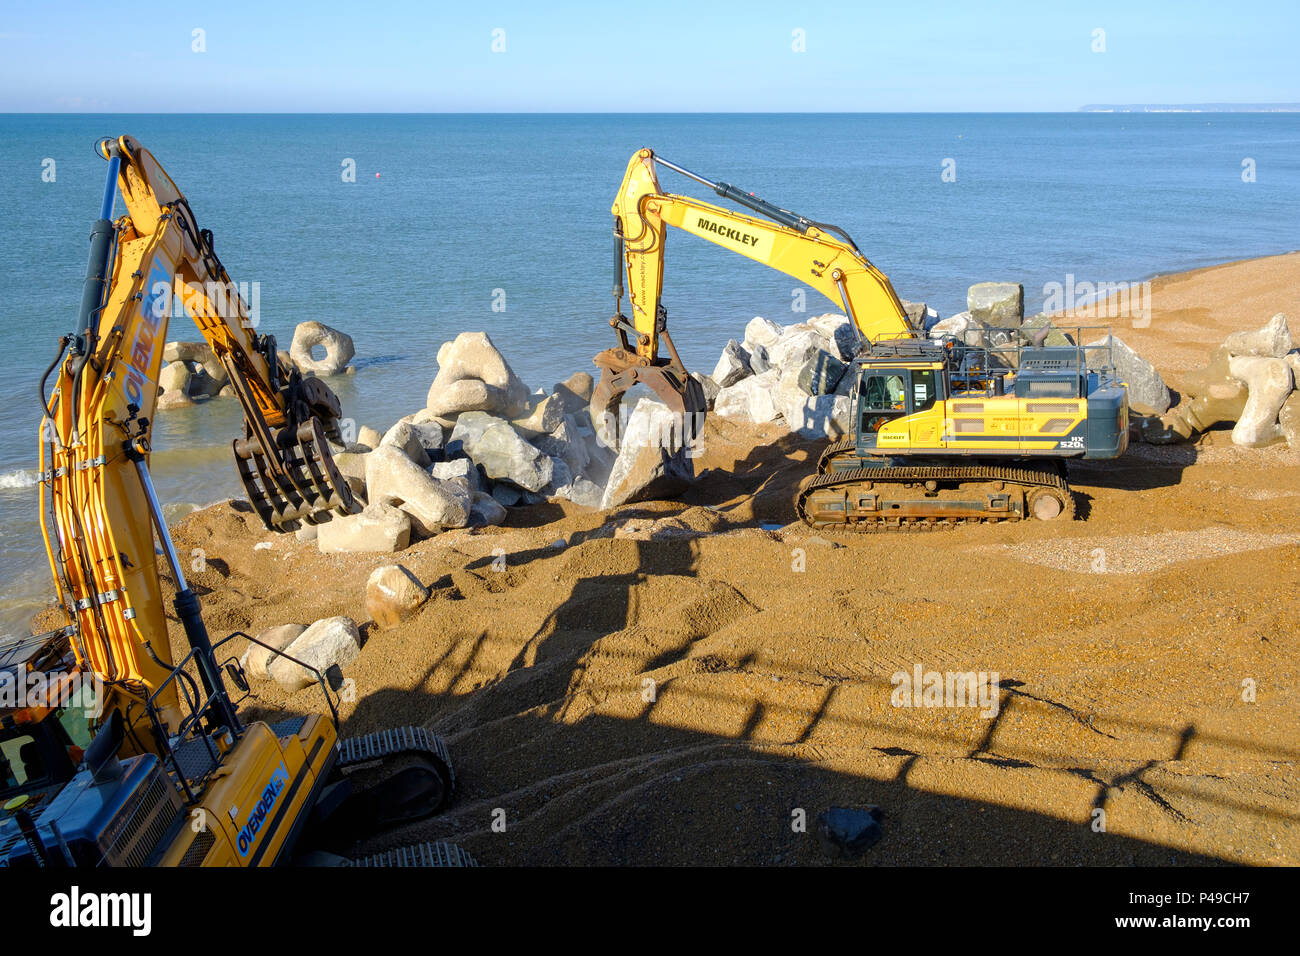 Hastings UK. Building sea defences and strengthening the Harbour Arm, with granite boulders transported by sea from Falmouth in Cornwall - Stock Image